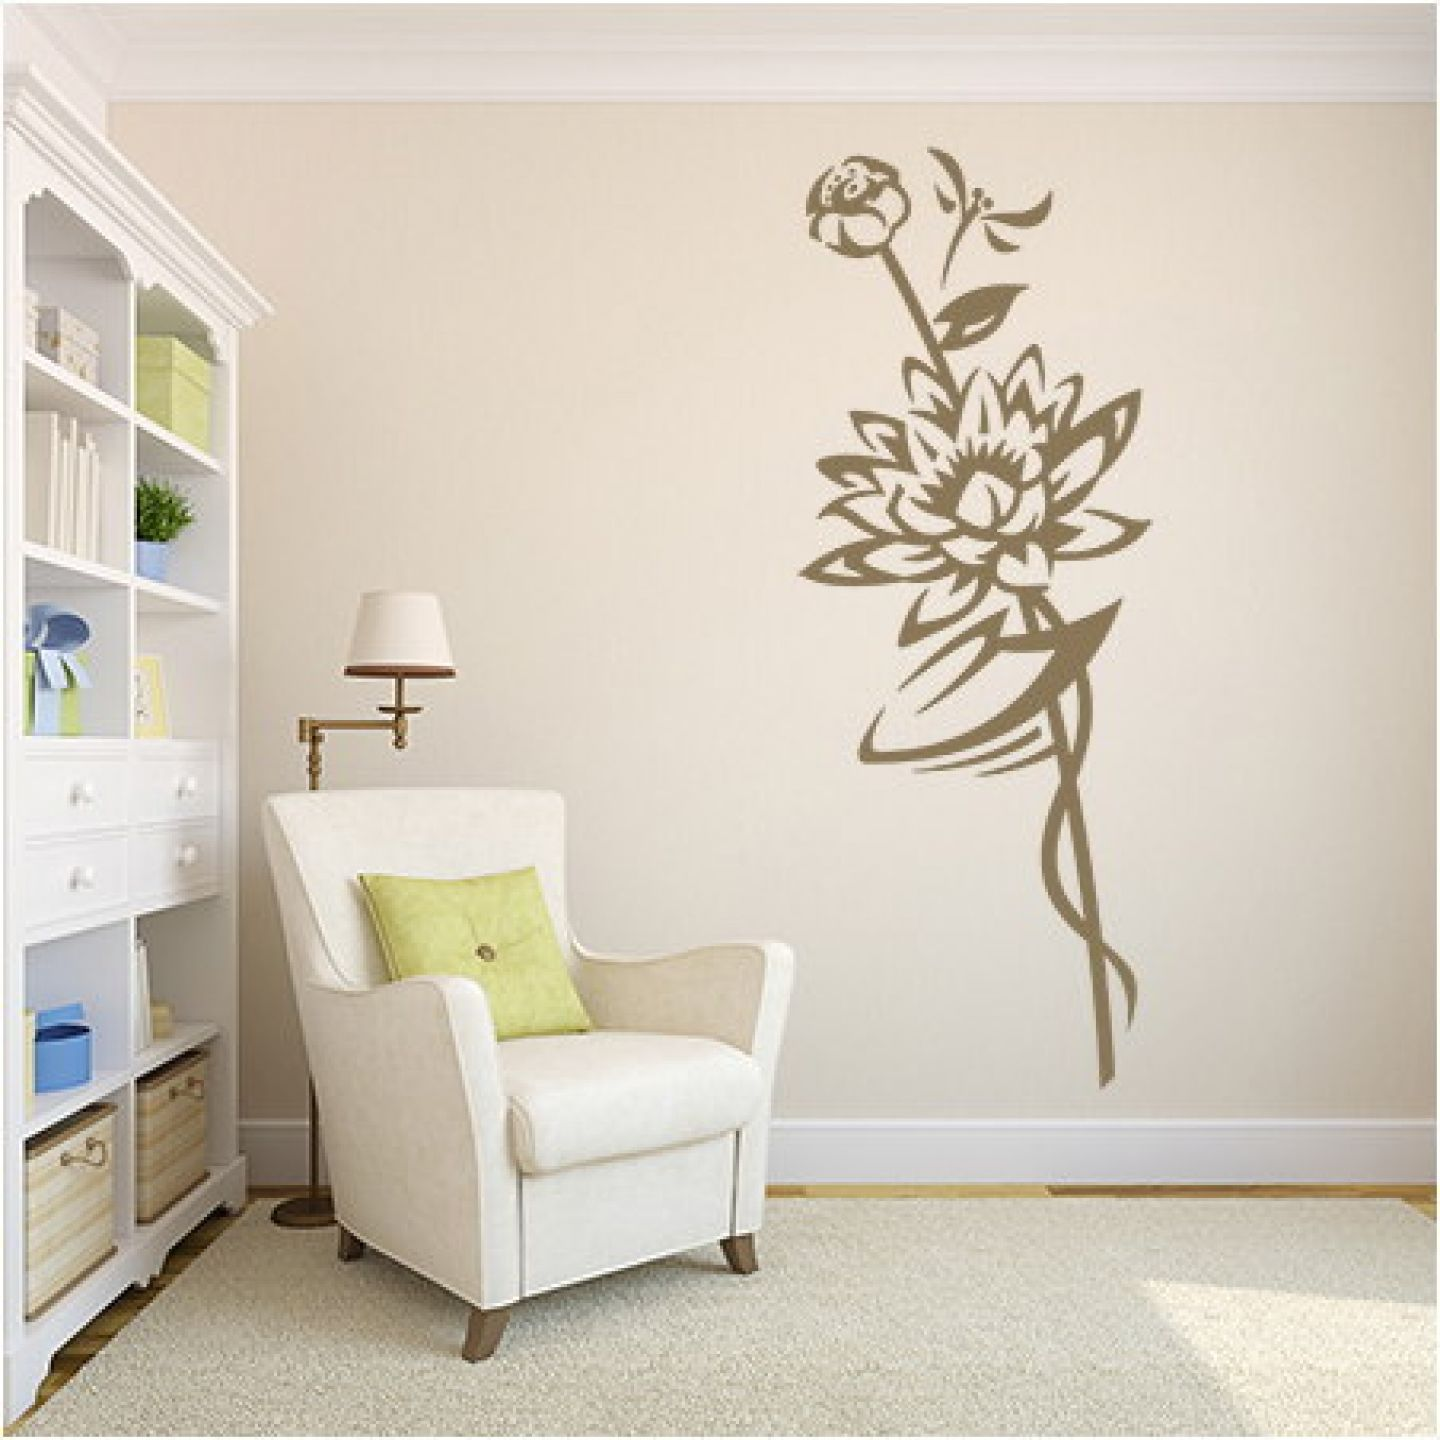 Flower Wall Stencil Ideas For Painting Kbhome Over Bathtub Dream